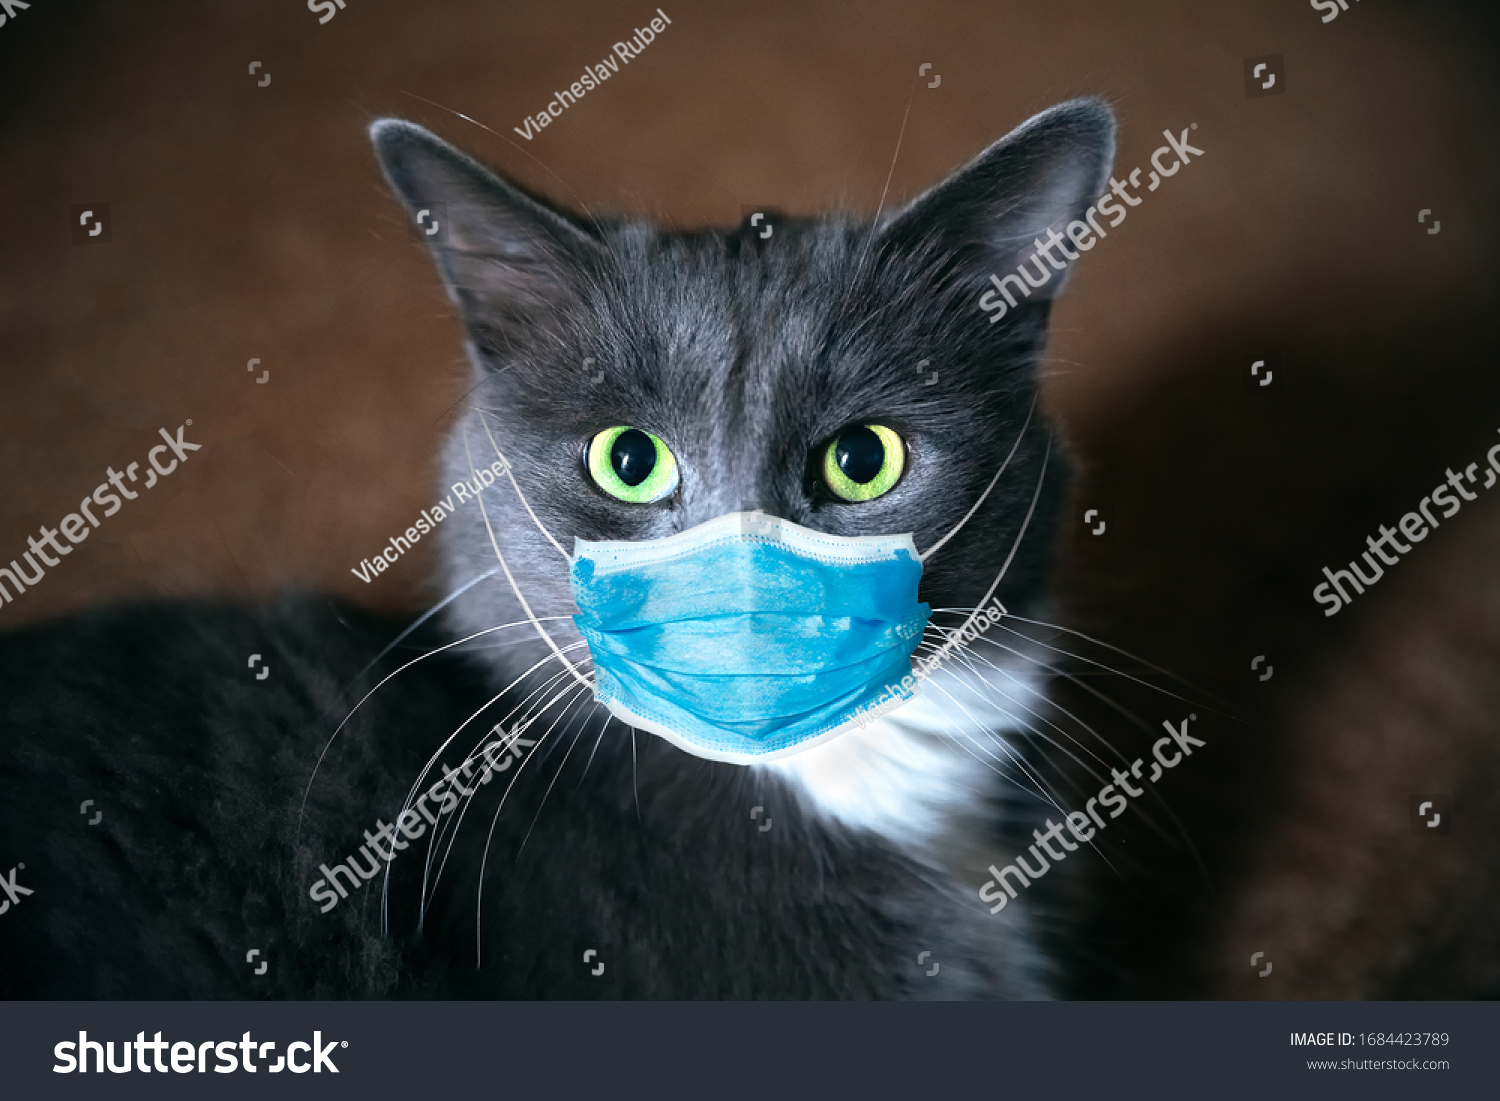 Cat in a medical mask. Protective antiviral mask on the cats face, Protective face mask for animals.  COVID-19, Coronovirus, hantavirus concept. Medical mask from coronavirus,  hantavirus. #1684423789